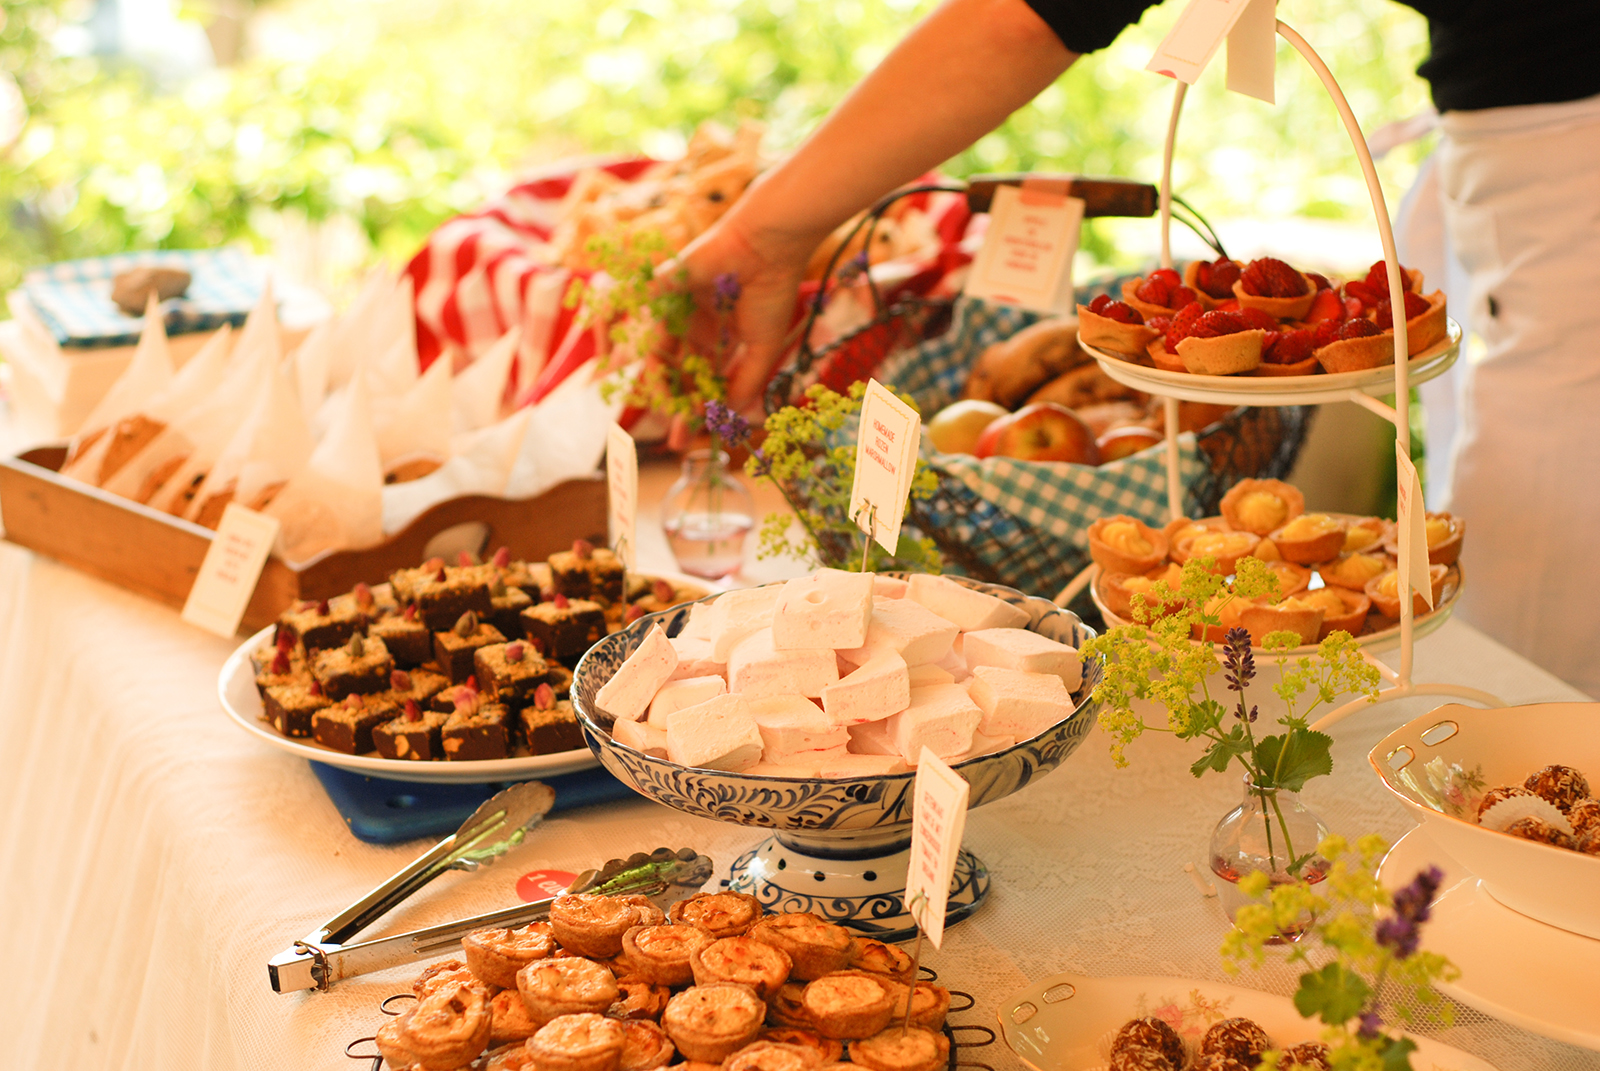 Een zomerse catering